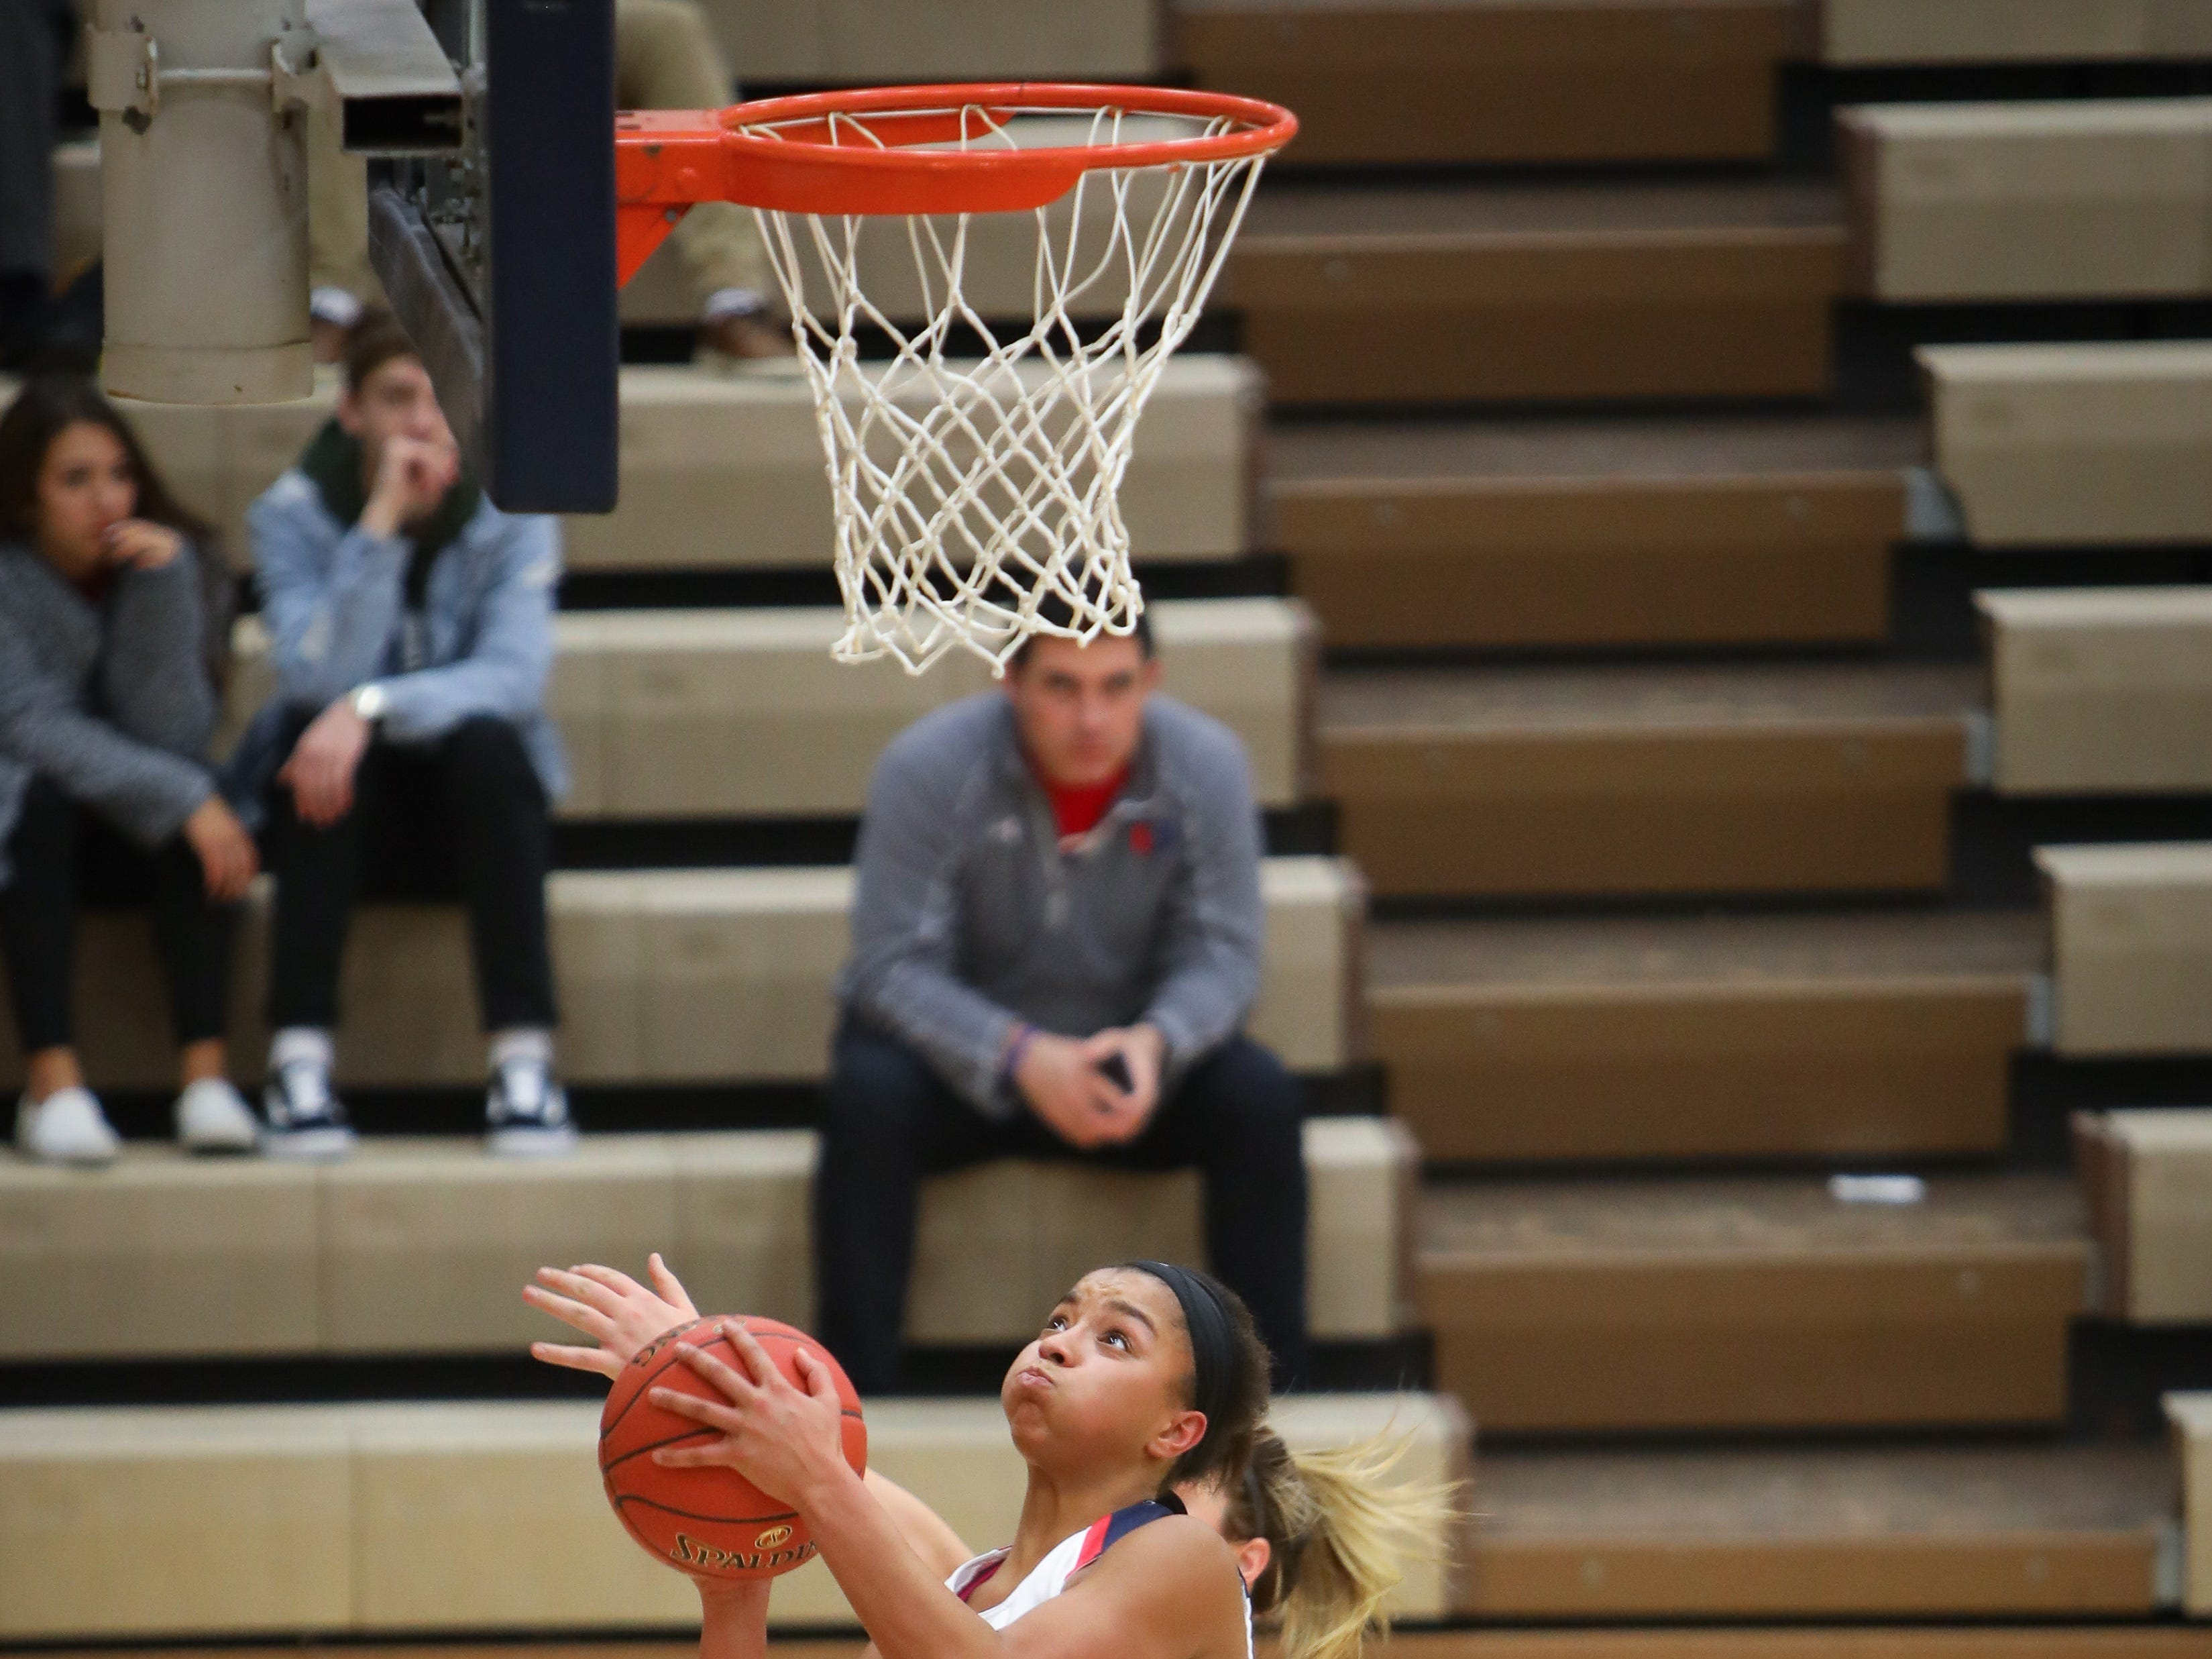 Urbandale junior Faith Putz goes for a layup during a girls high school basketball game between the Johnston Dragons and the Urbandale J-Hawks at Urbandale High School on Dec. 18, 2018 in Urbandale, Iowa.